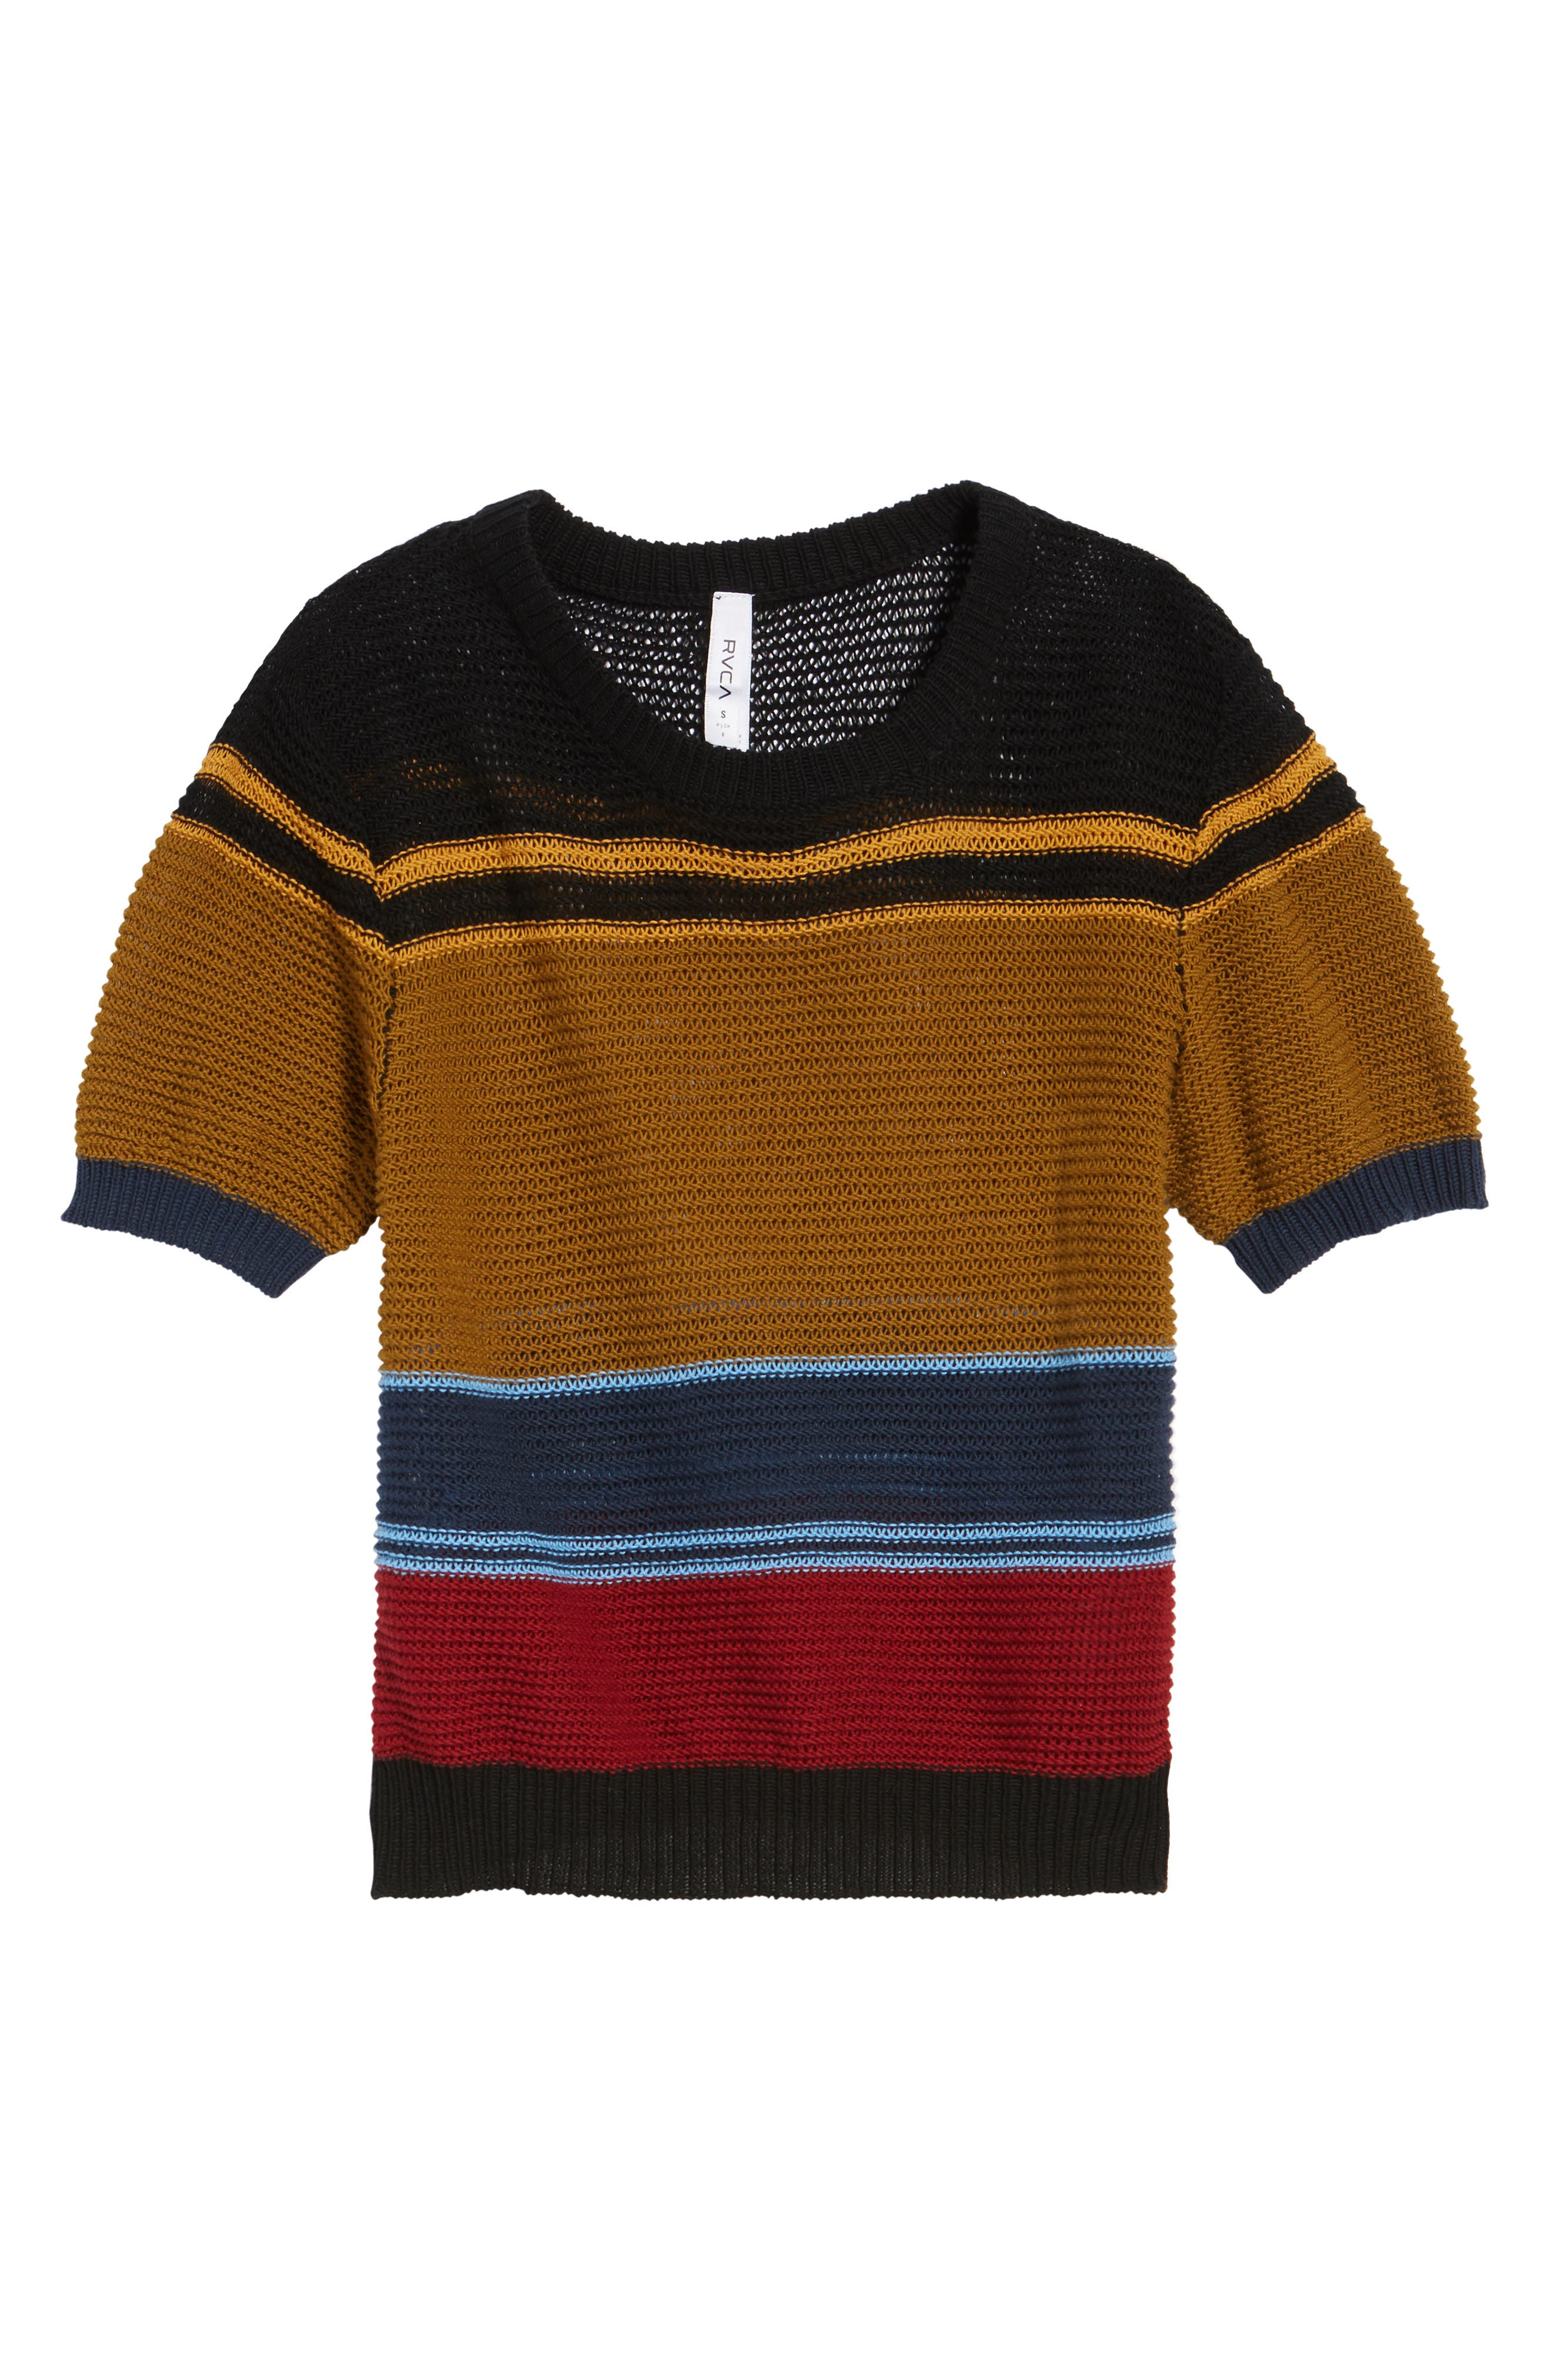 Brightside Stripe Knit Sweater,                             Alternate thumbnail 6, color,                             001